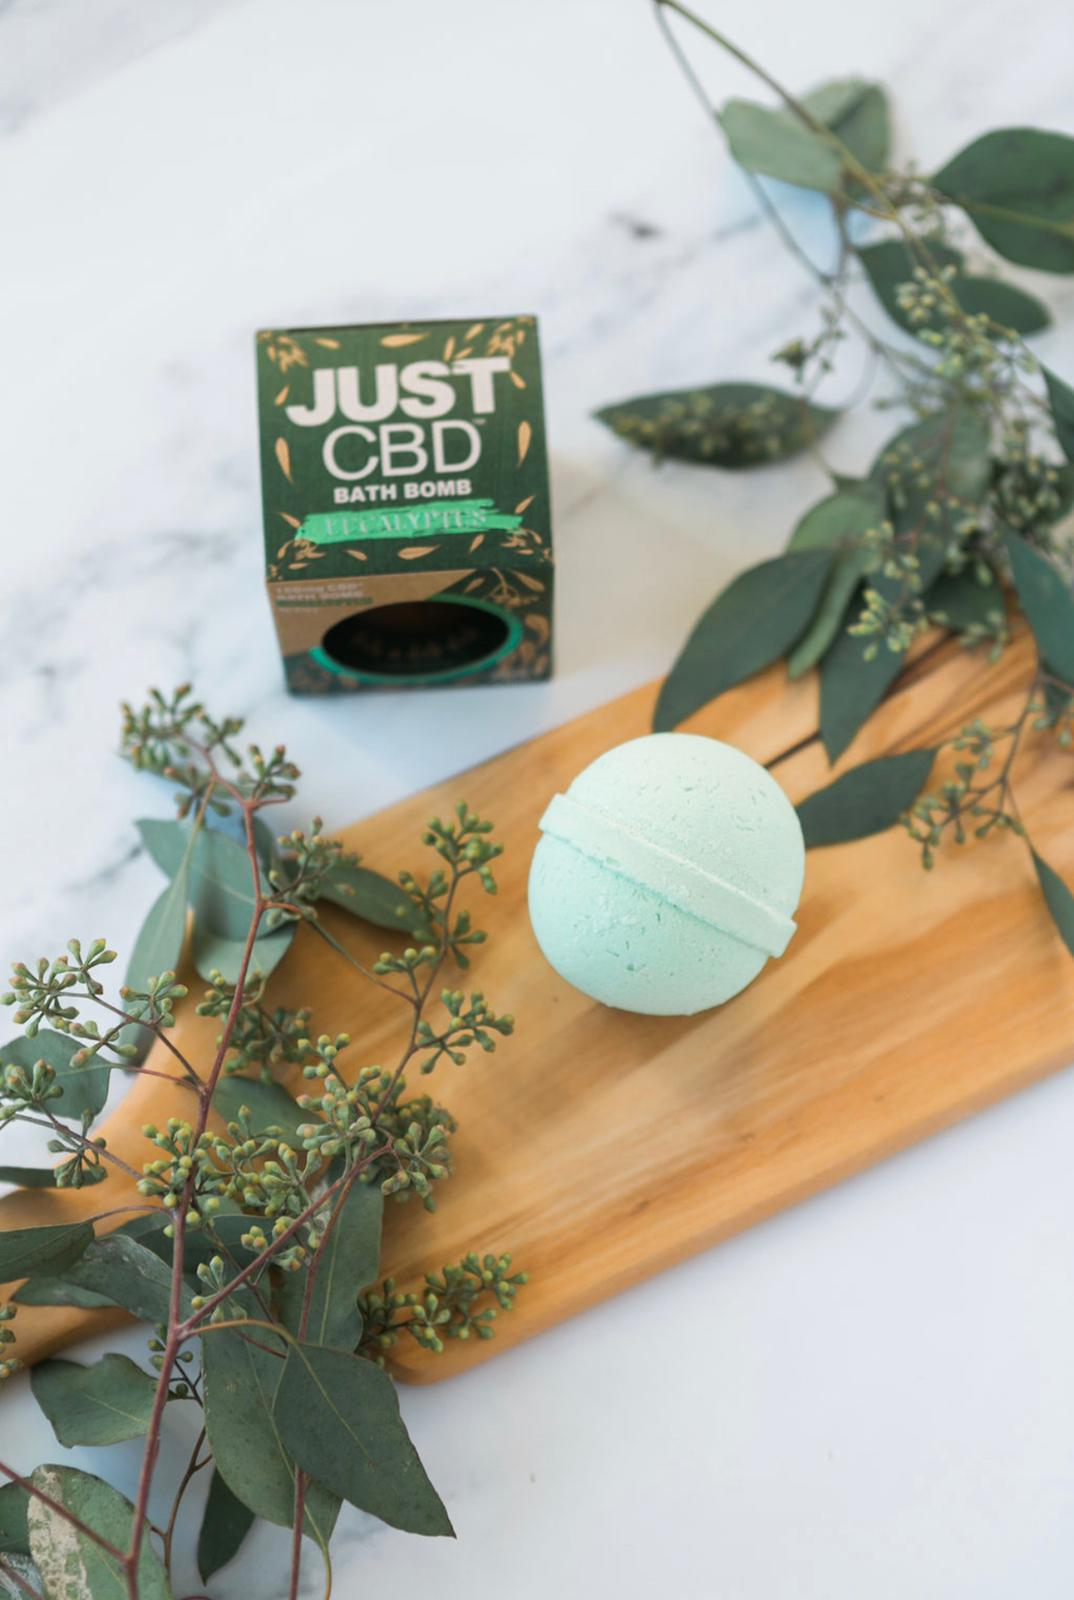 Bath Bombs CBD